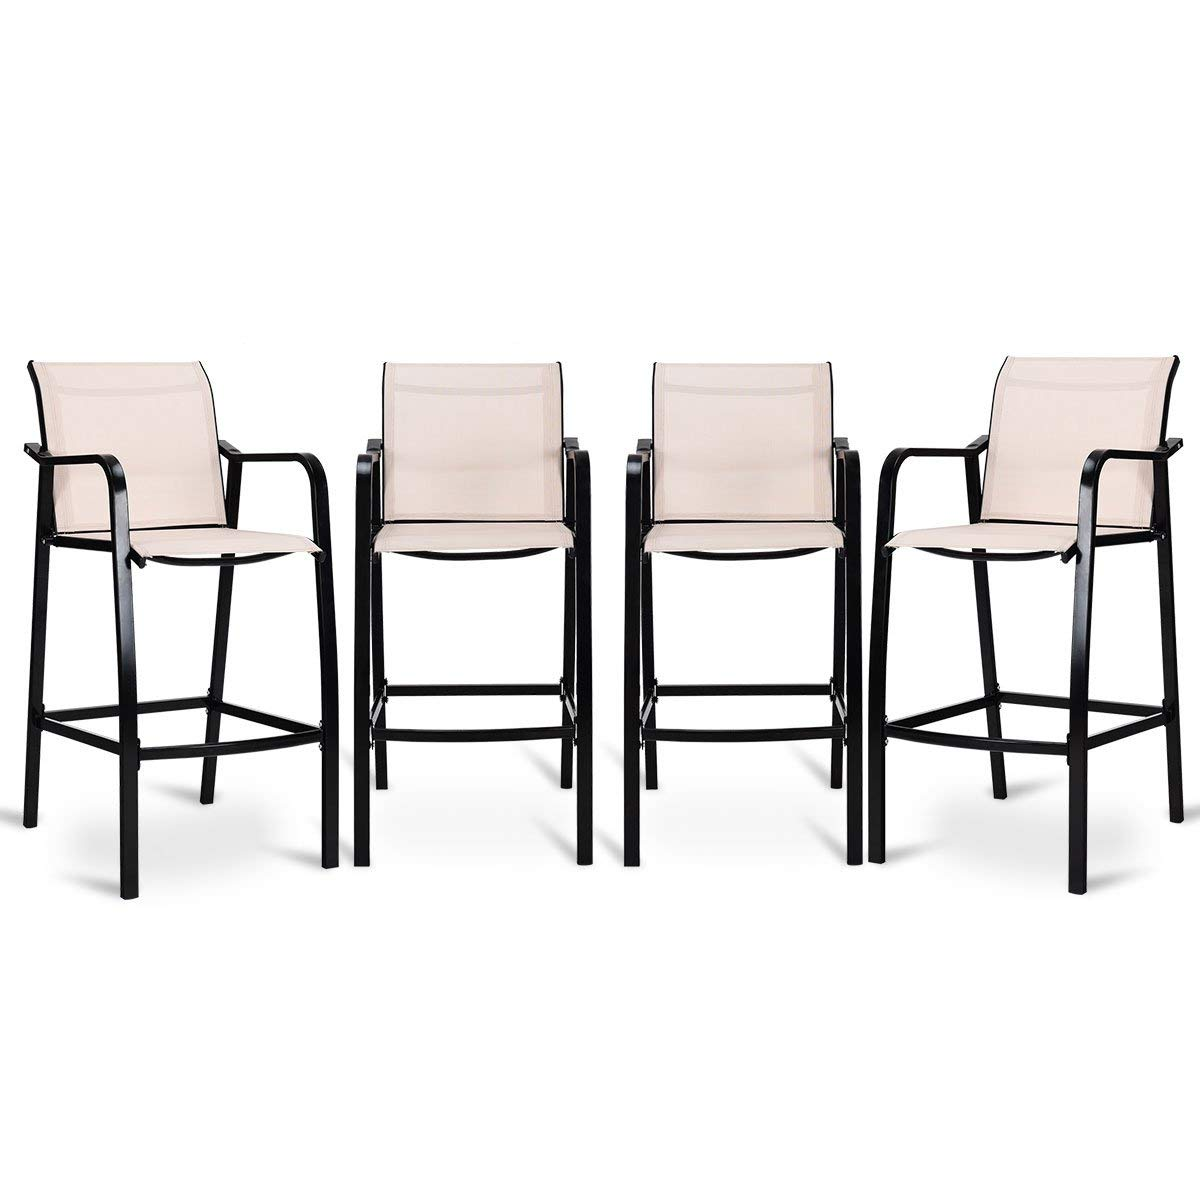 642623e62f9 Get Quotations · COSTWAY Set of 4 Bar Chairs Modern Style Counter Height  Stool Steel Frame Sling Dining Chairs